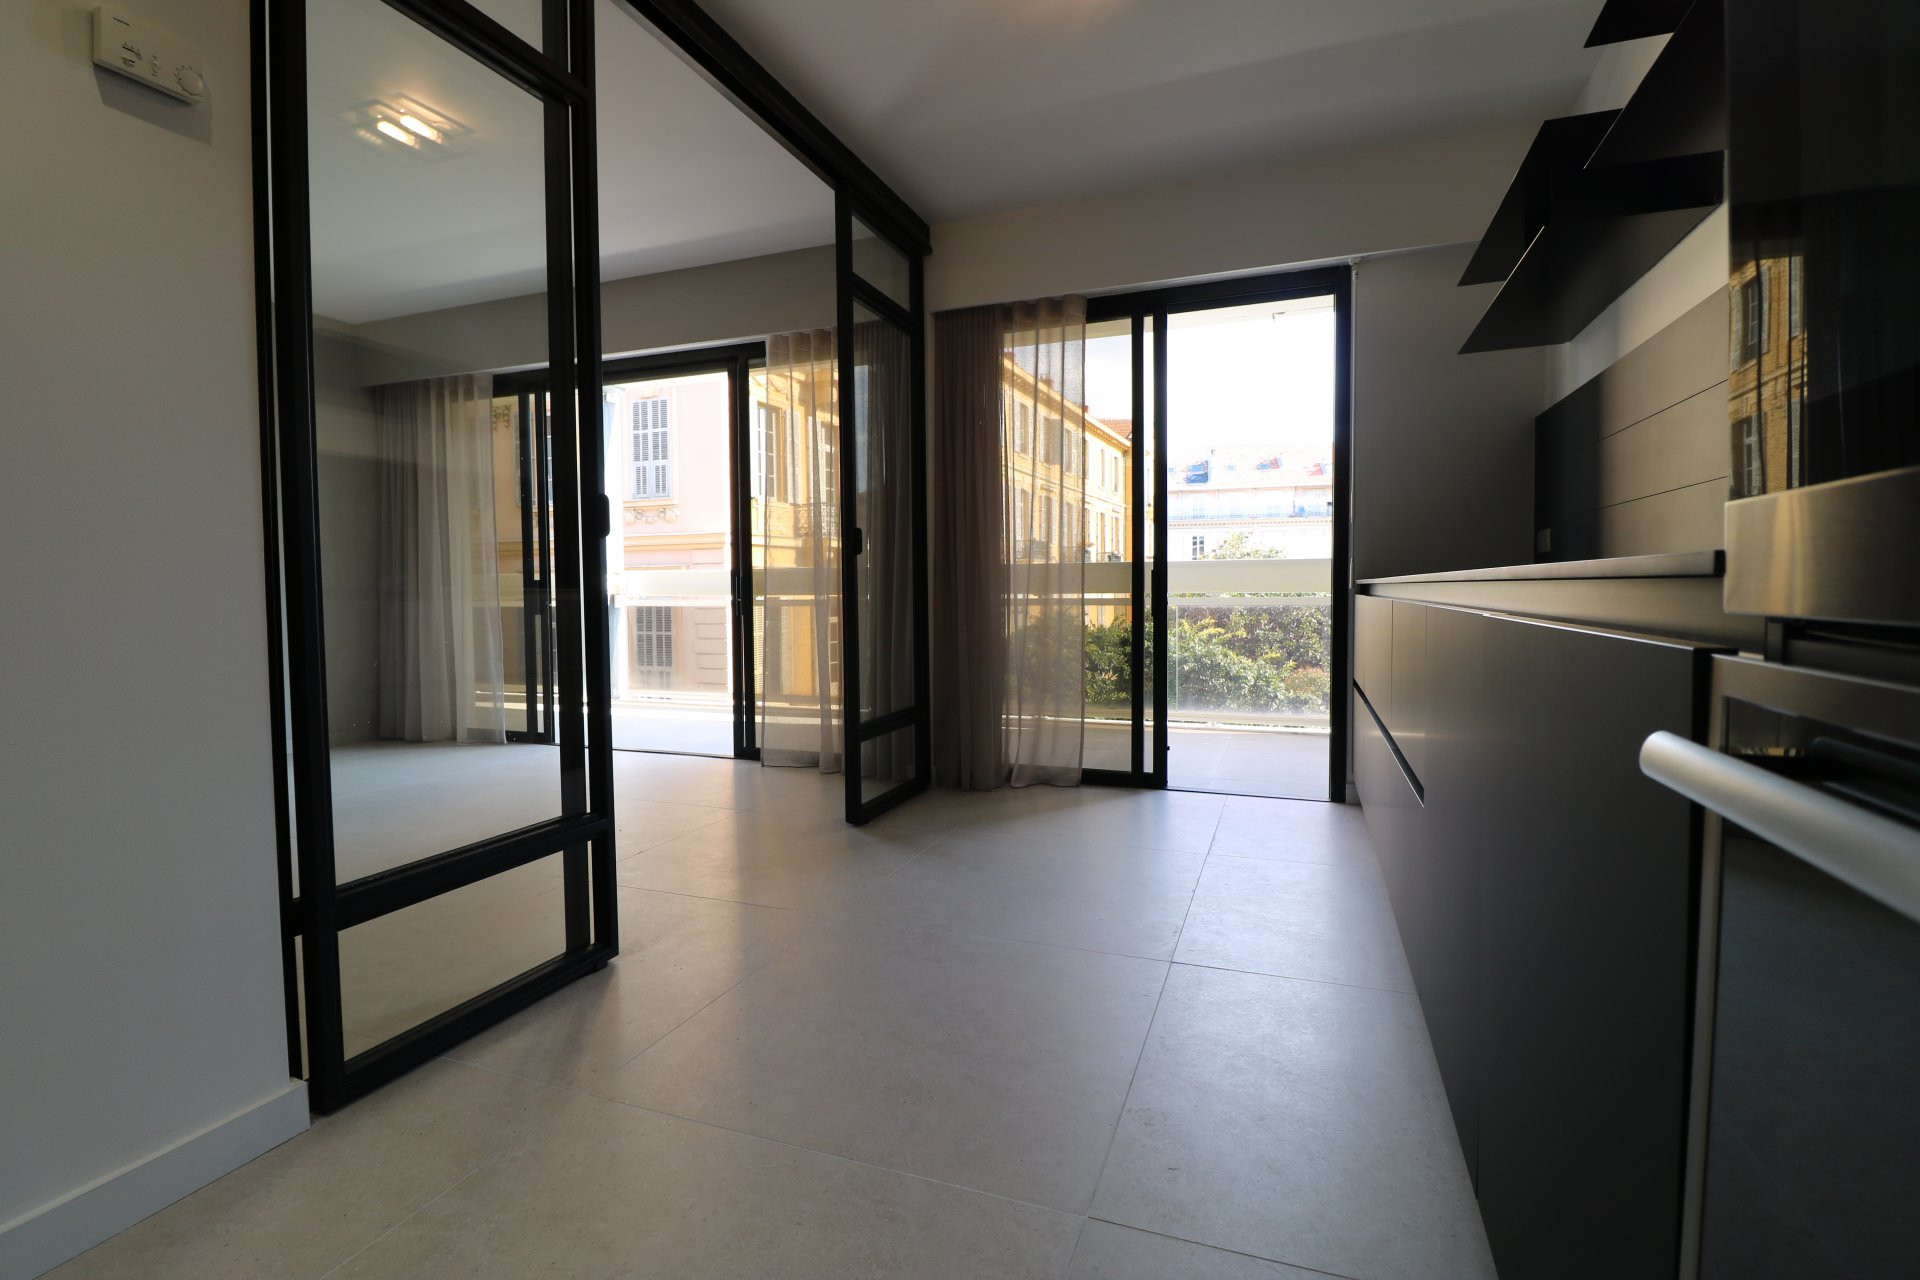 3 rooms renovated with Terrace in Nice Carré d'Or